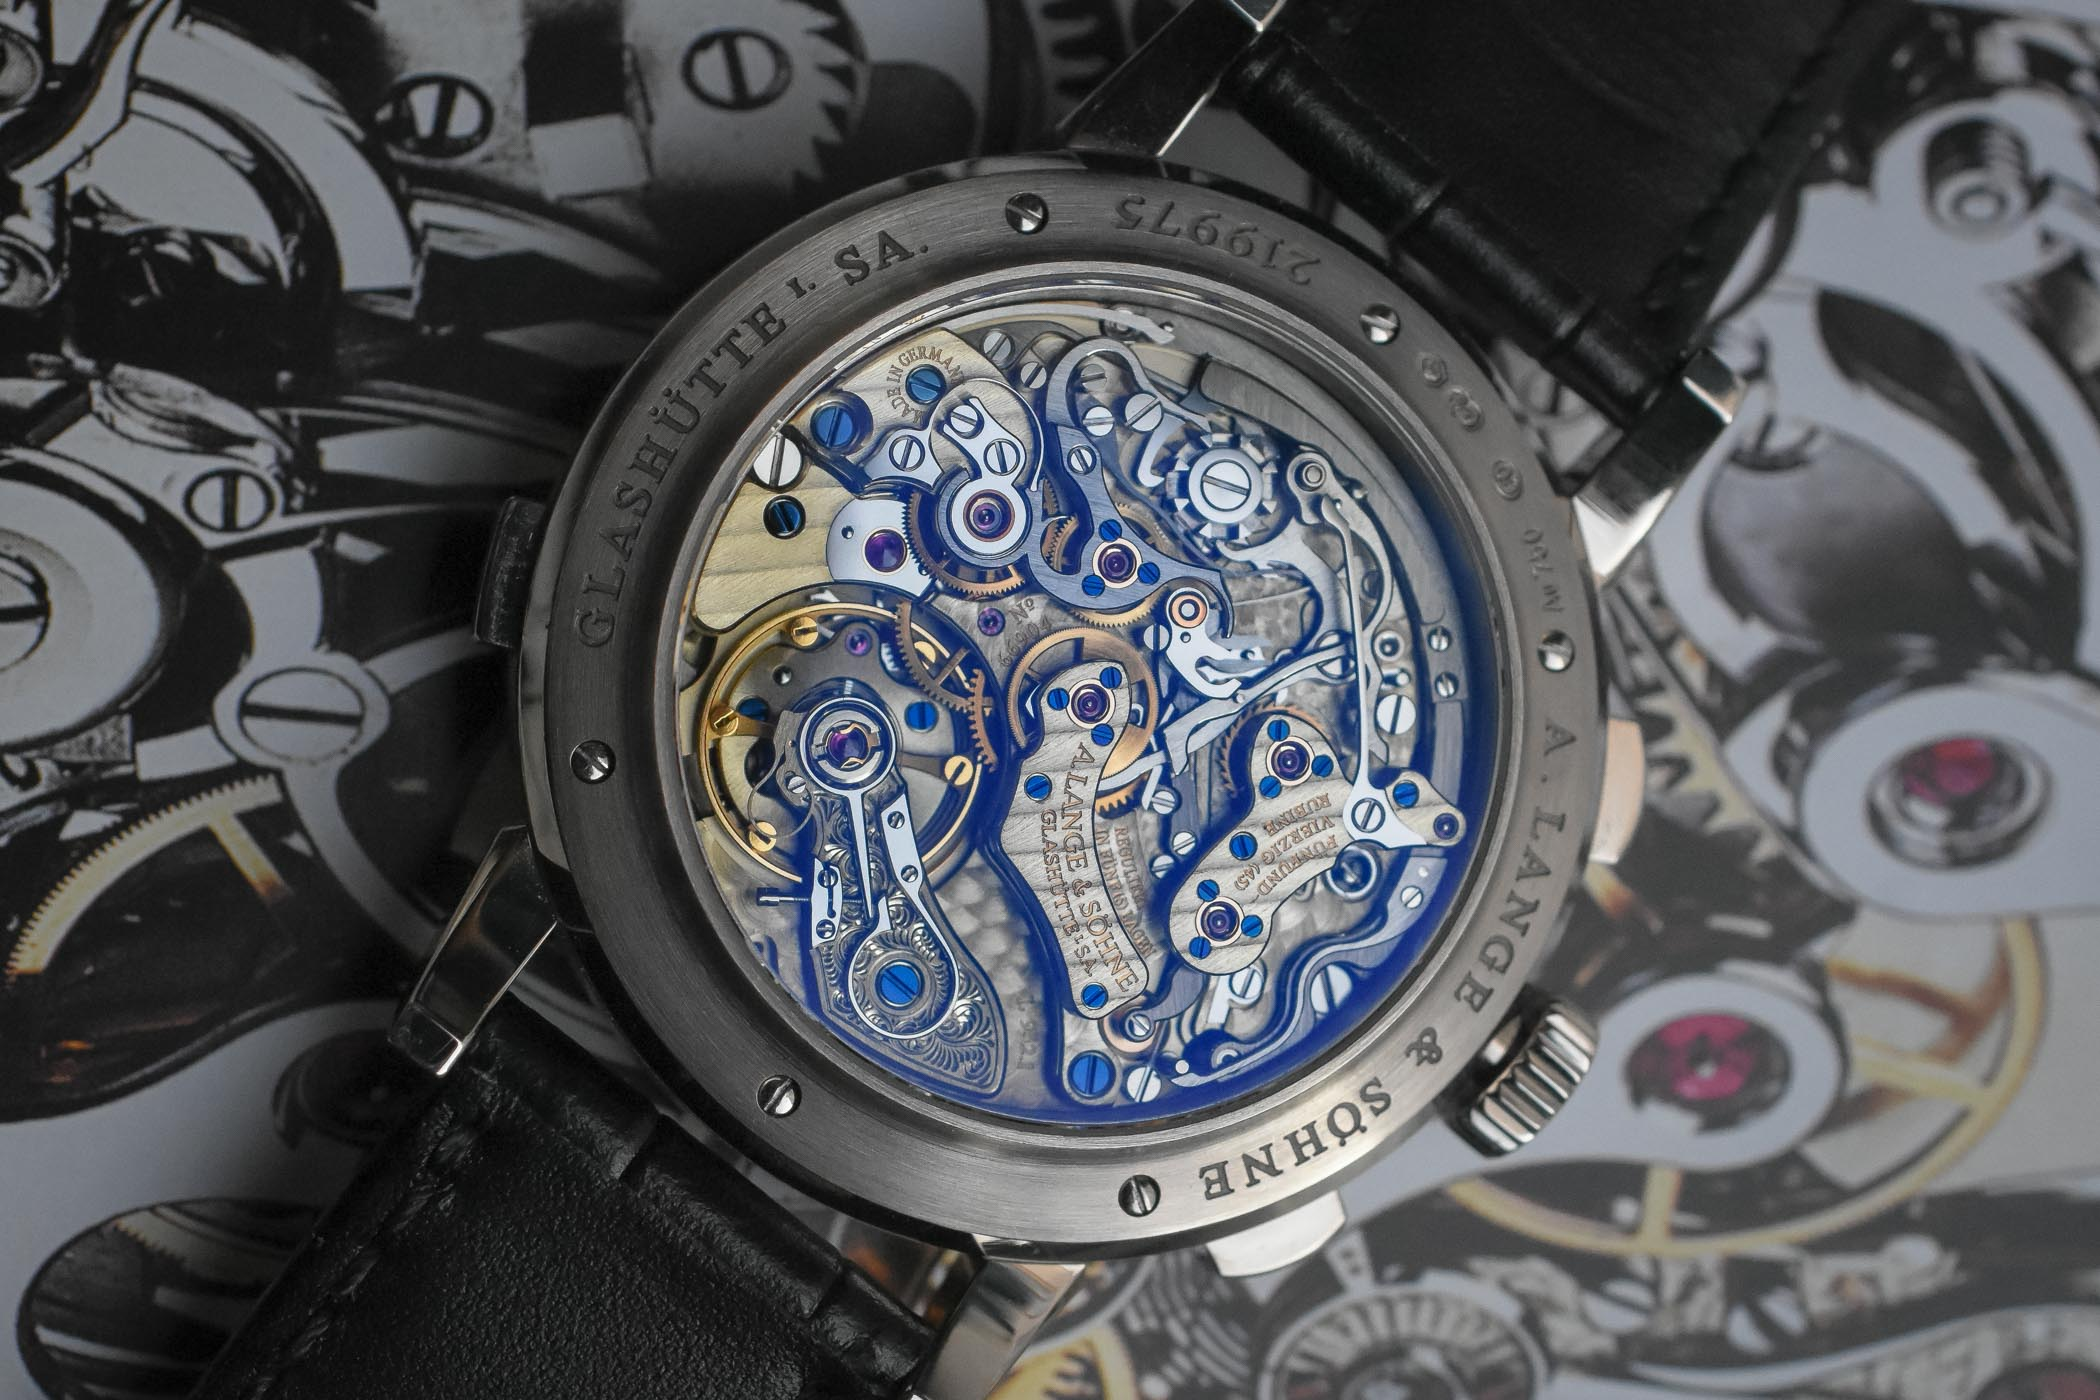 Đồng hồ A Lange & Sohne Datograph Perpetual